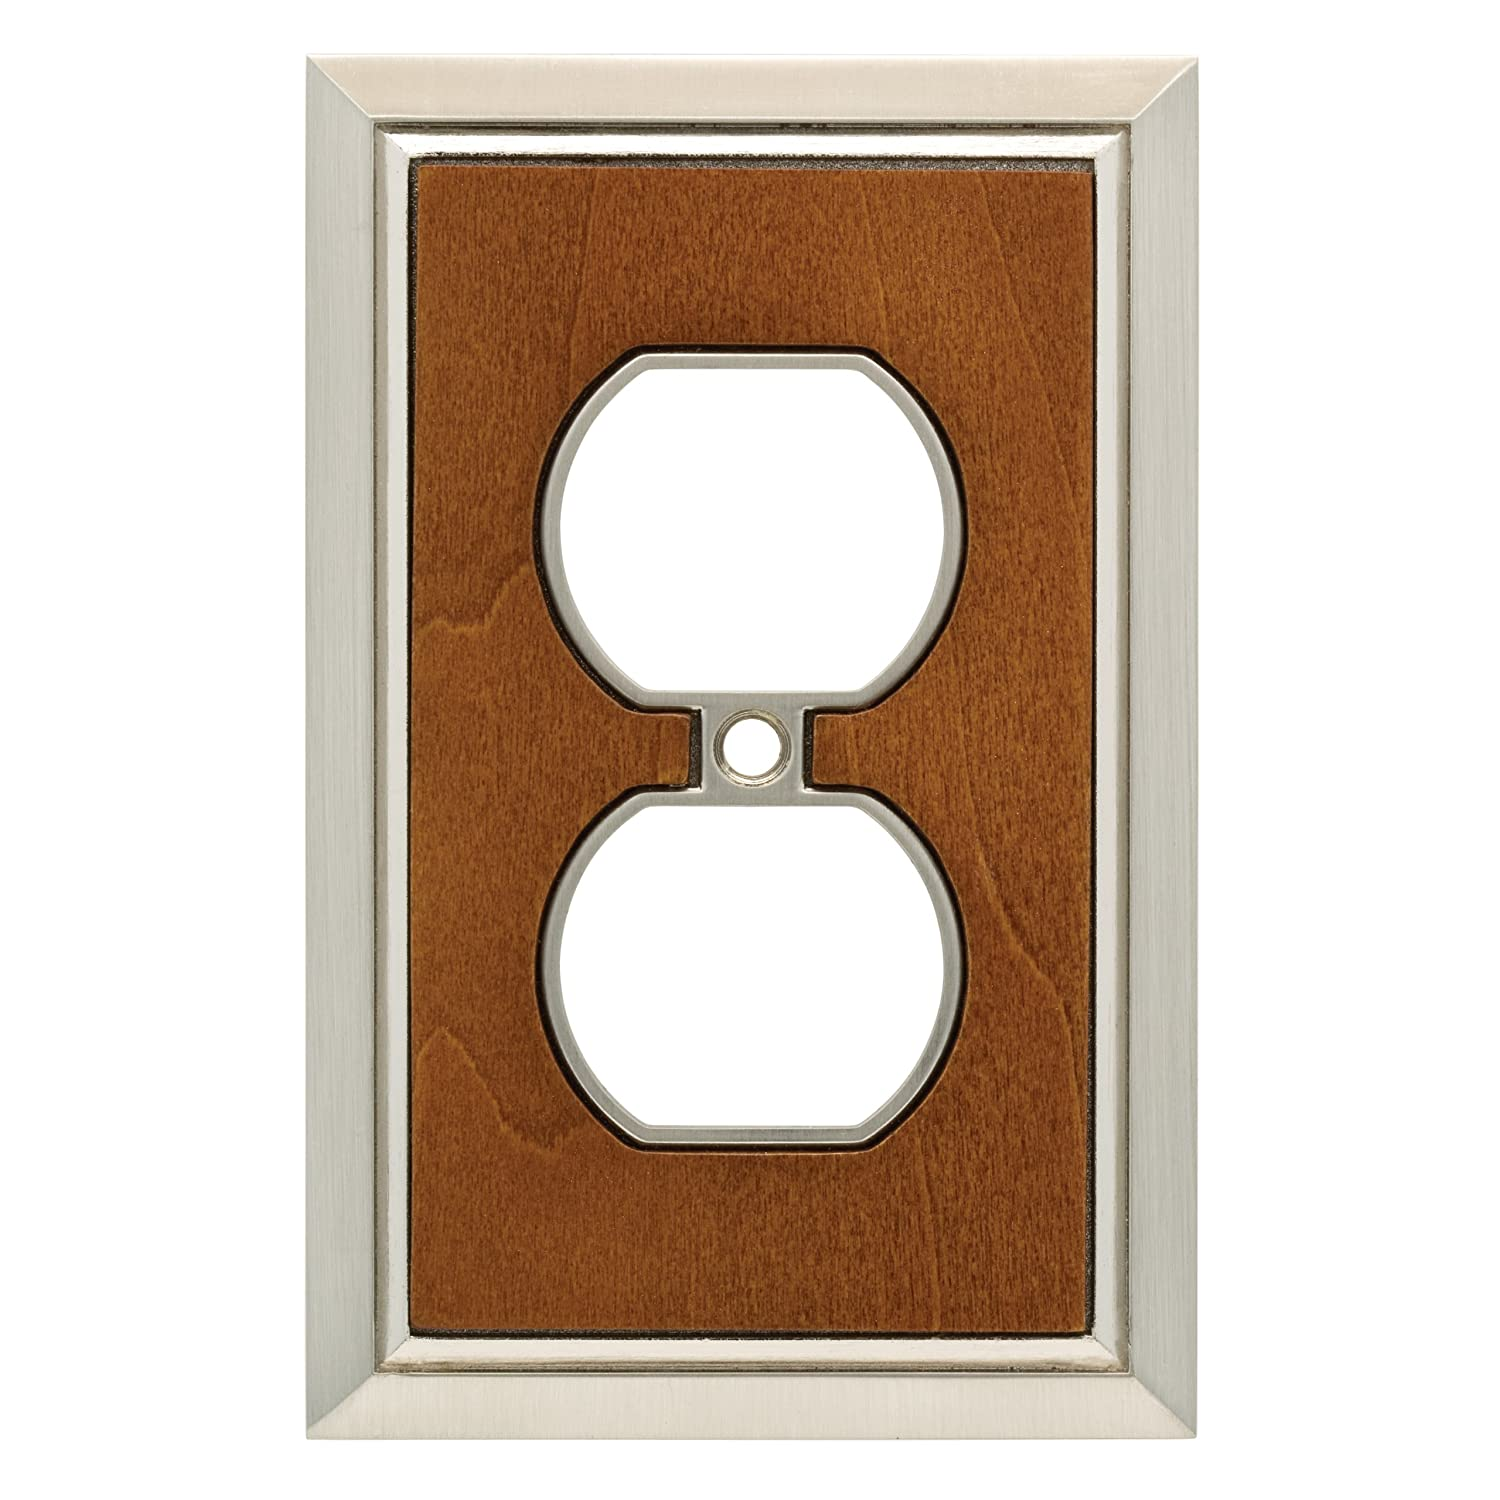 Excellent low-cost Brainerd Liberty 126453 AC wall plate